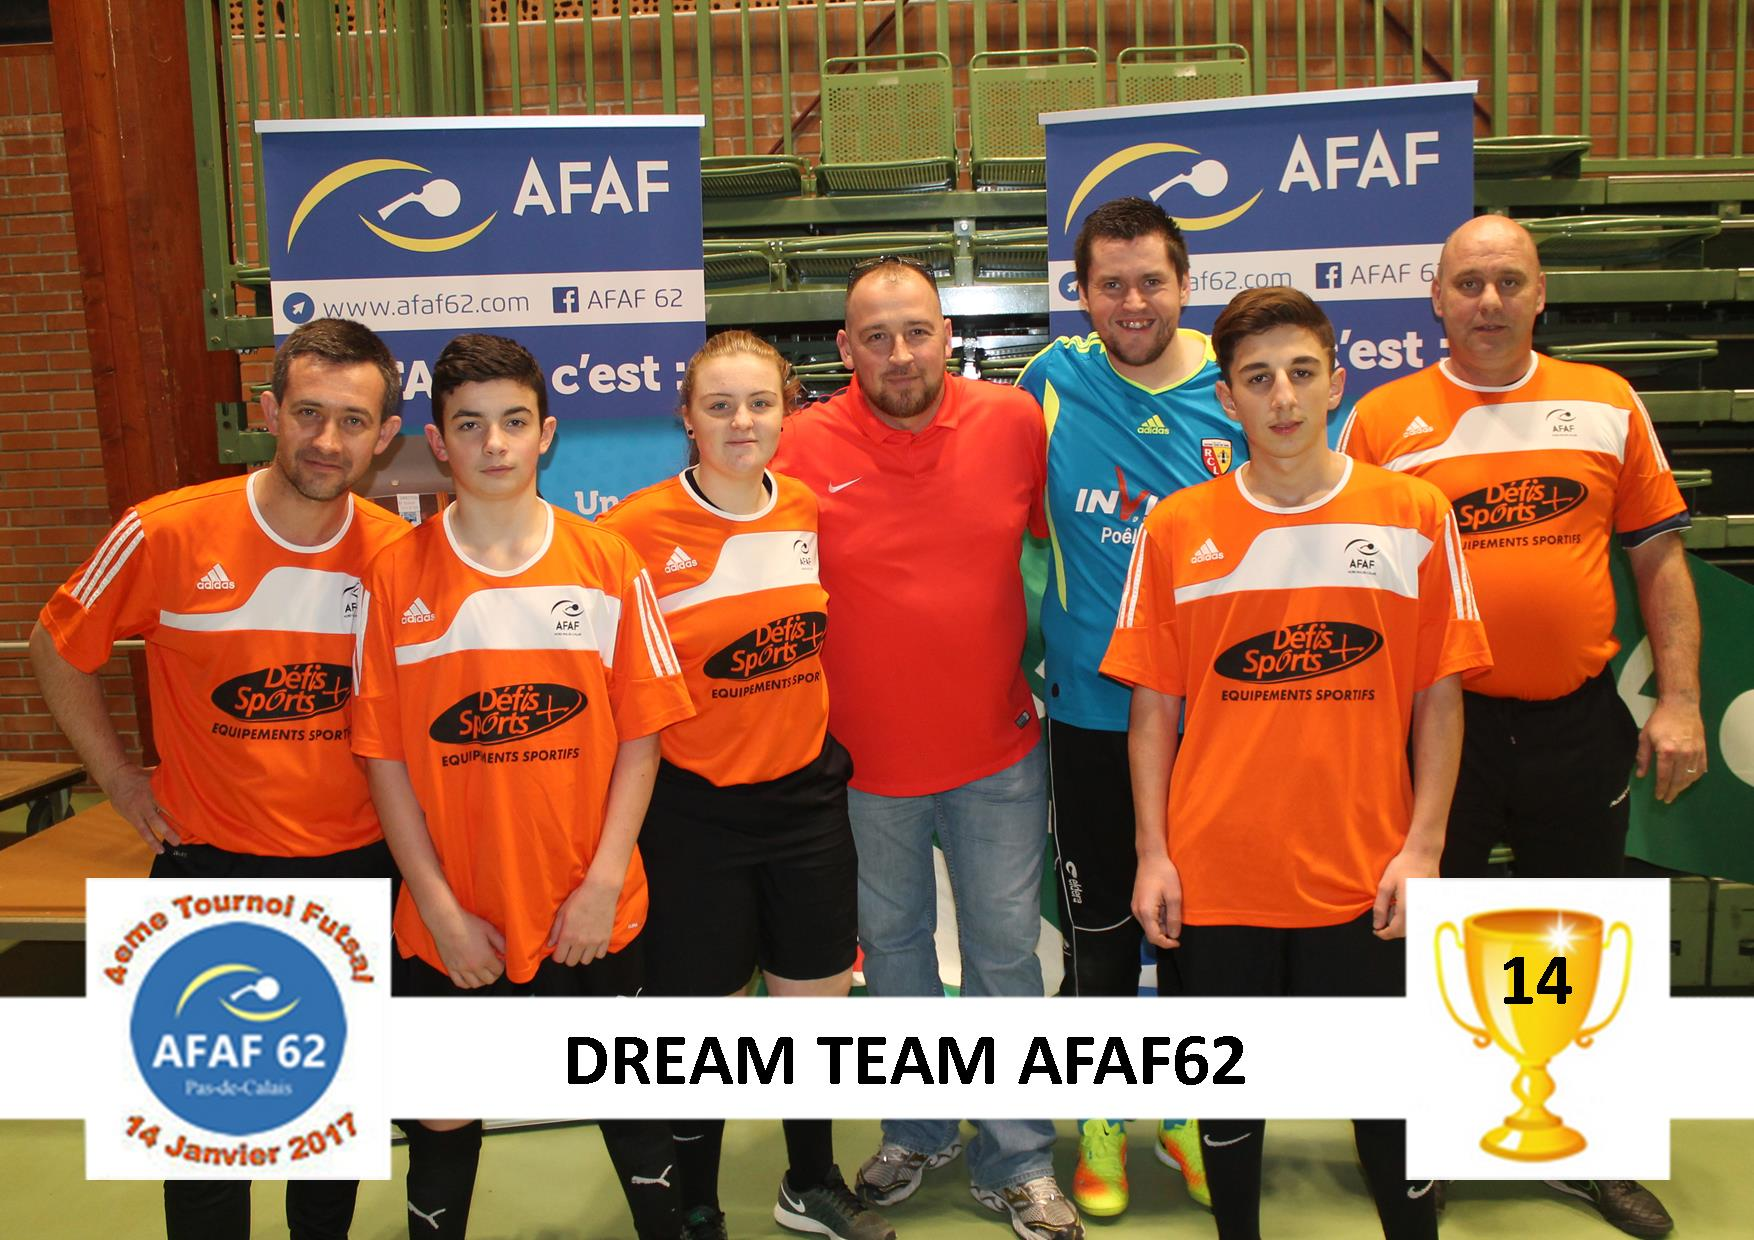 DREAM TEAM AFAF62.jpg